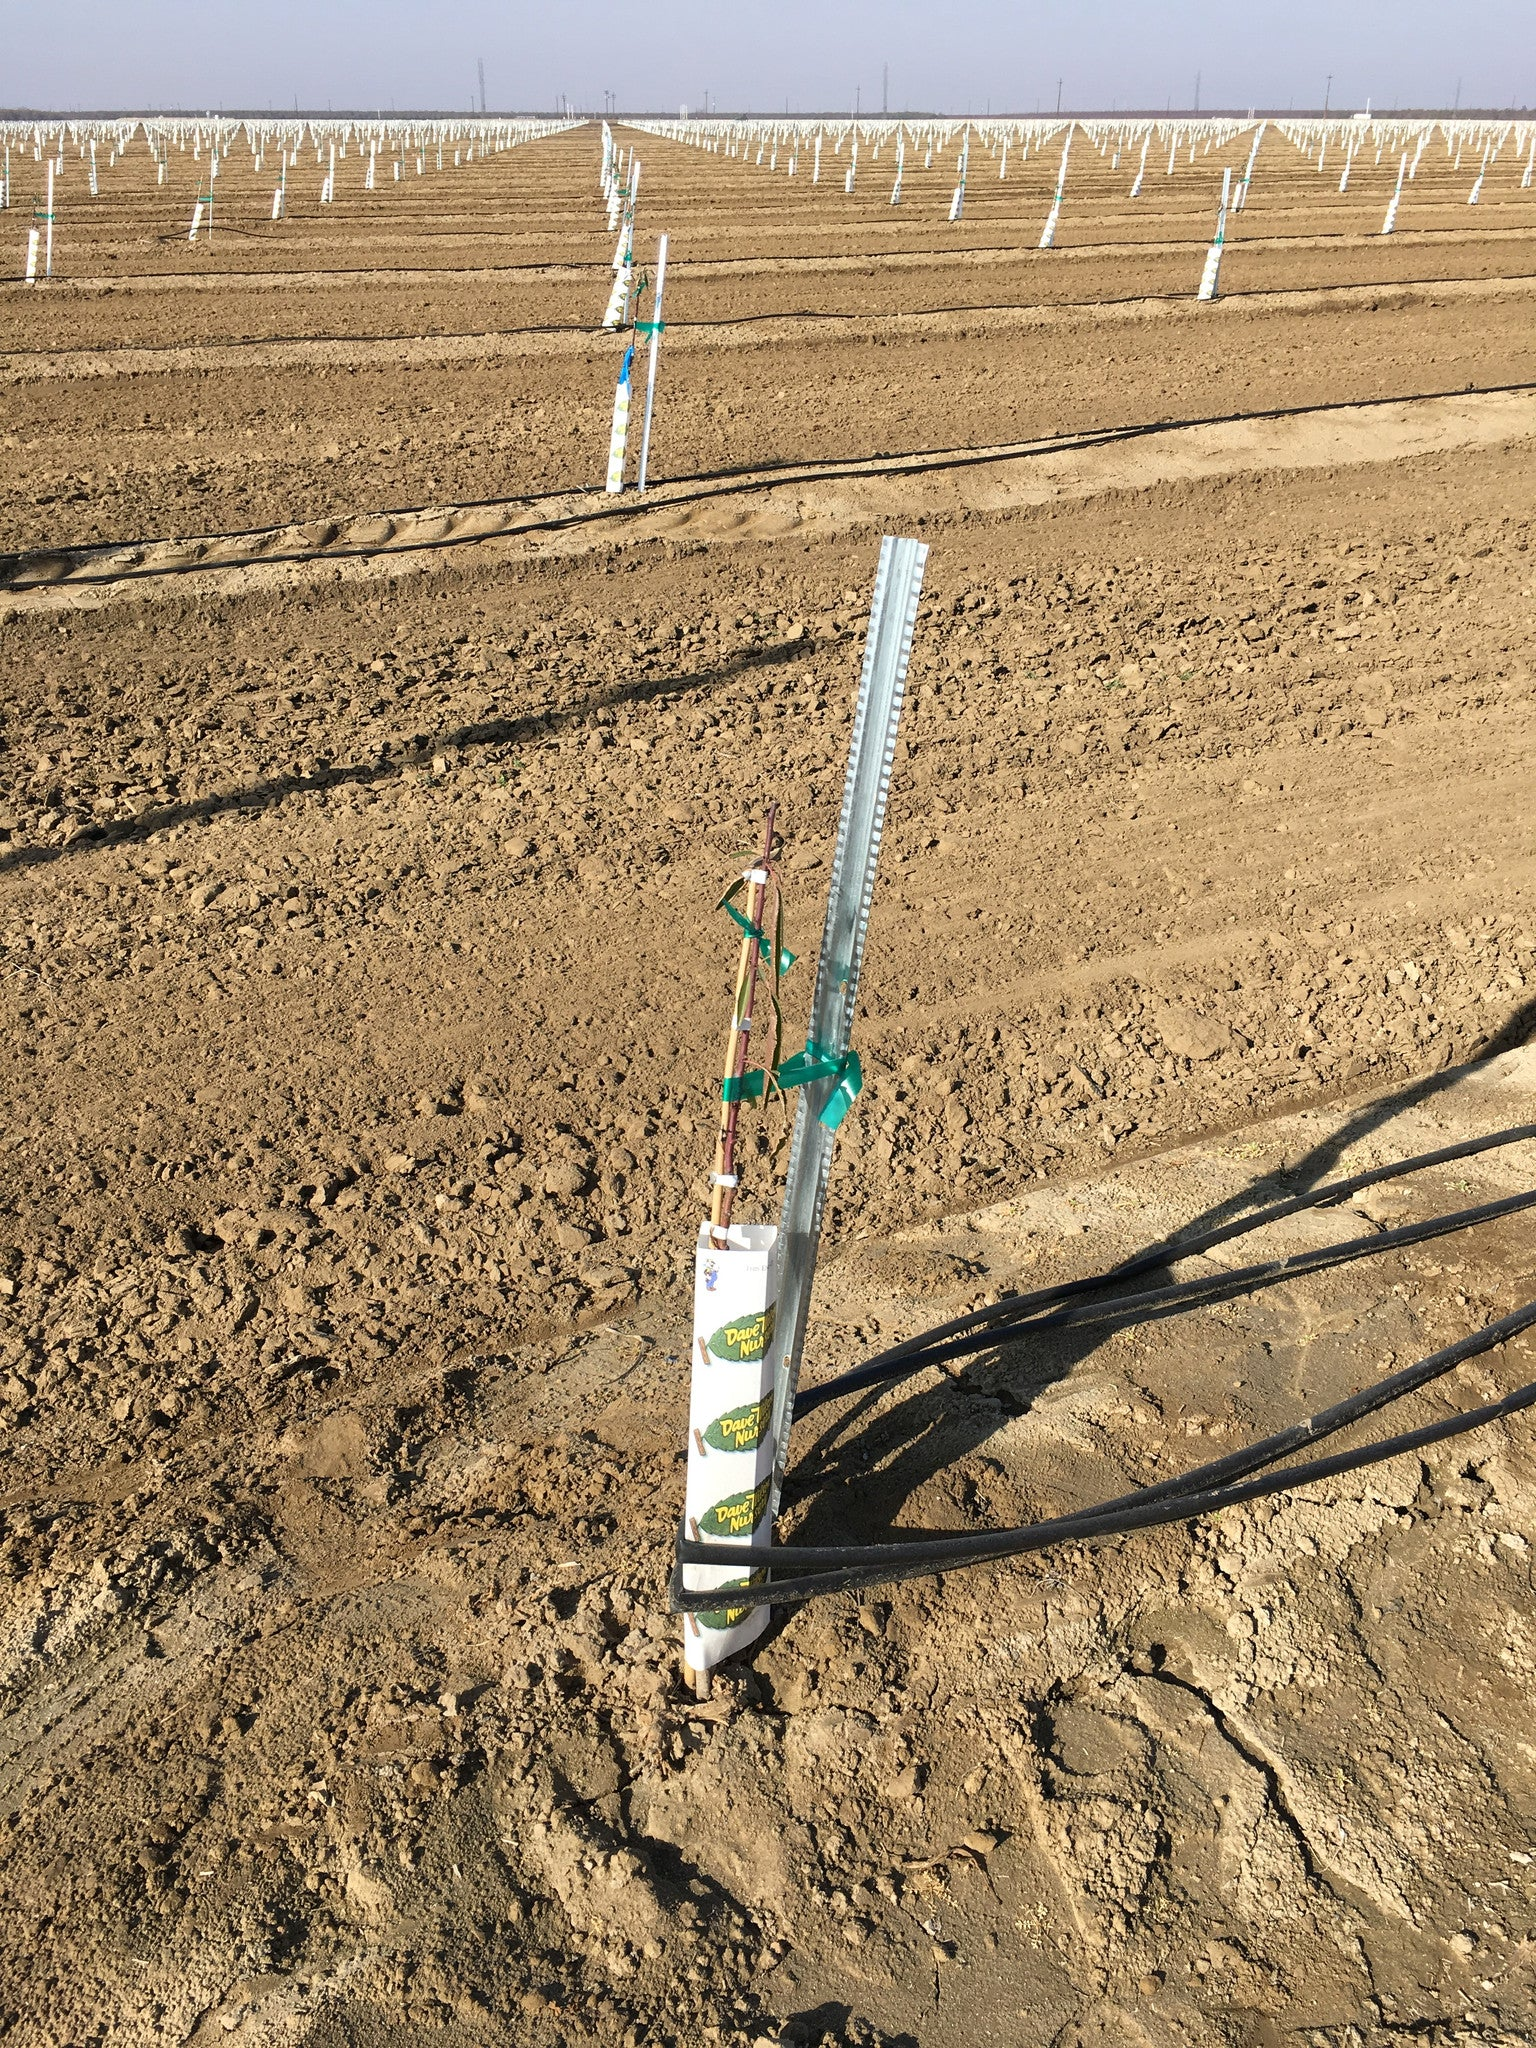 2.71 Stake used in an Almond Orchard